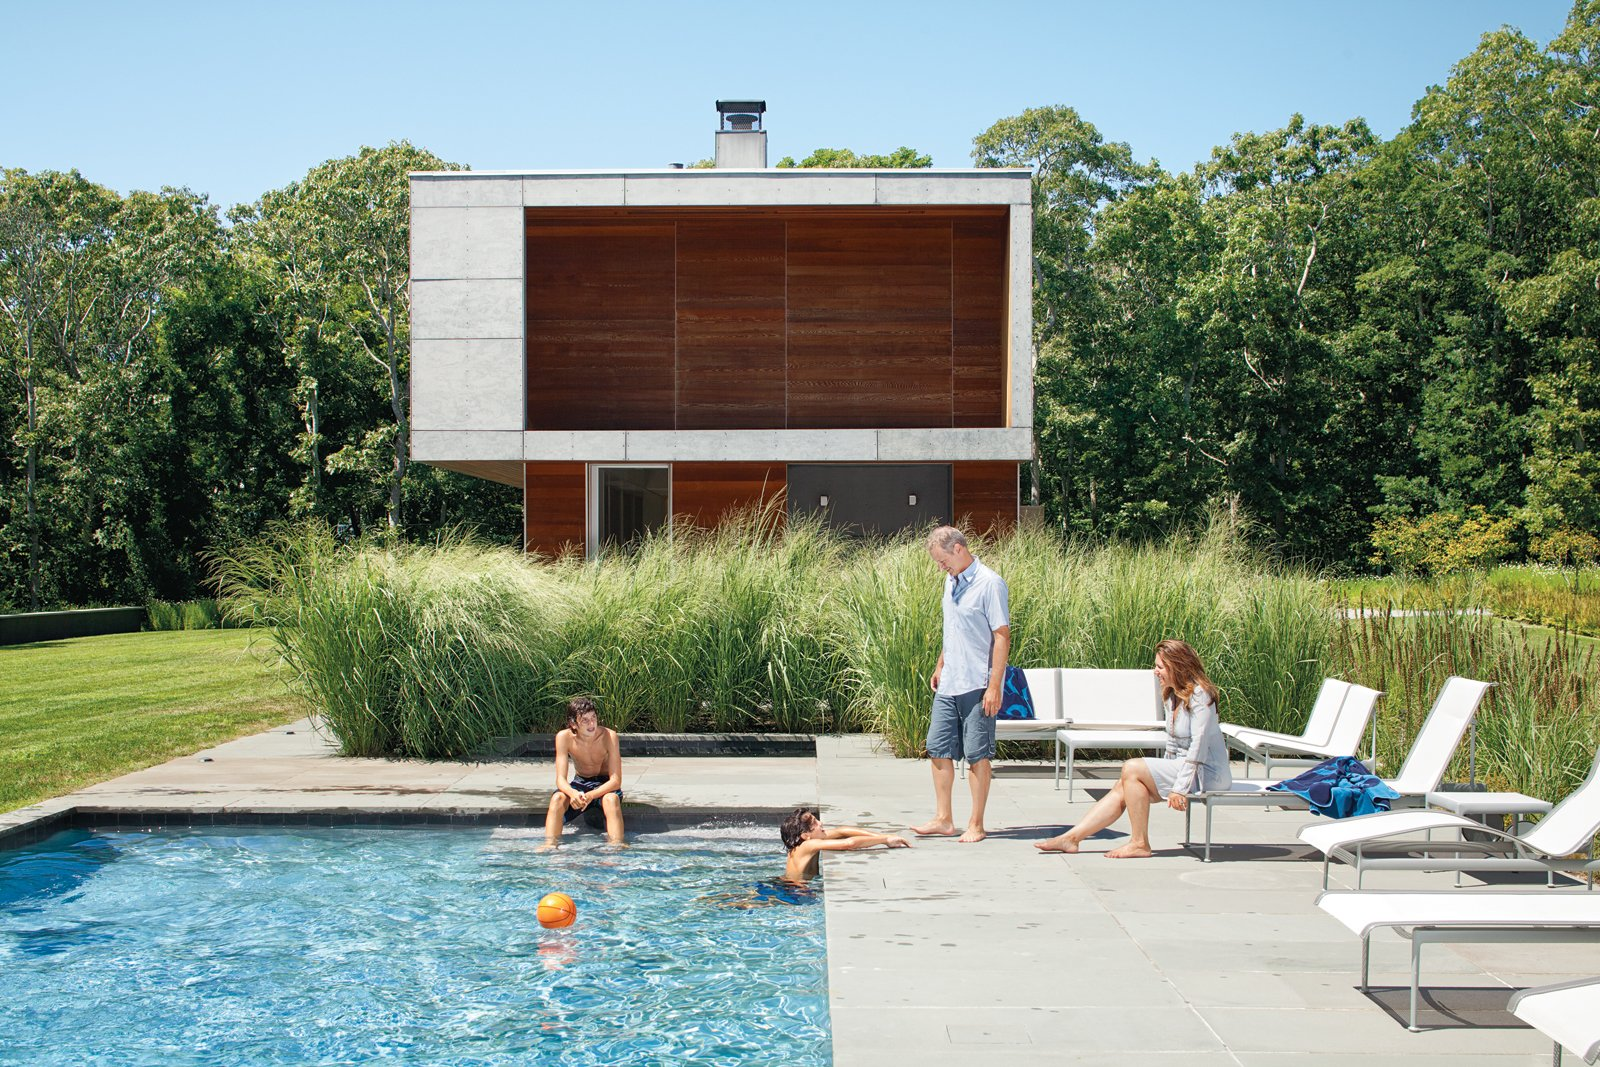 The Pryors relax at their Montauk retreat among modular furniture from Richard Schultz's Swell Seating Collection and chaise longues from his 1966 collection from Knoll. Tagged: Outdoor and Swimming Pools, Tubs, Shower.  Photo 1 of 10 in 10 Sunny Poolside Prefabs